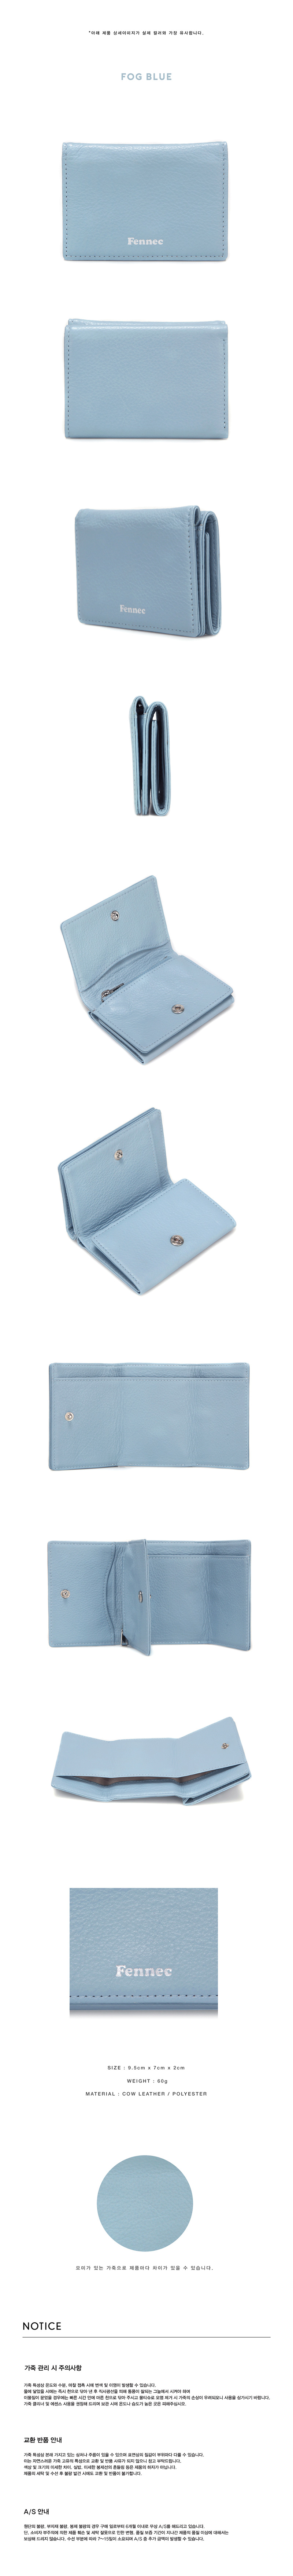 soft-mini-wallet-fog-blue.jpg